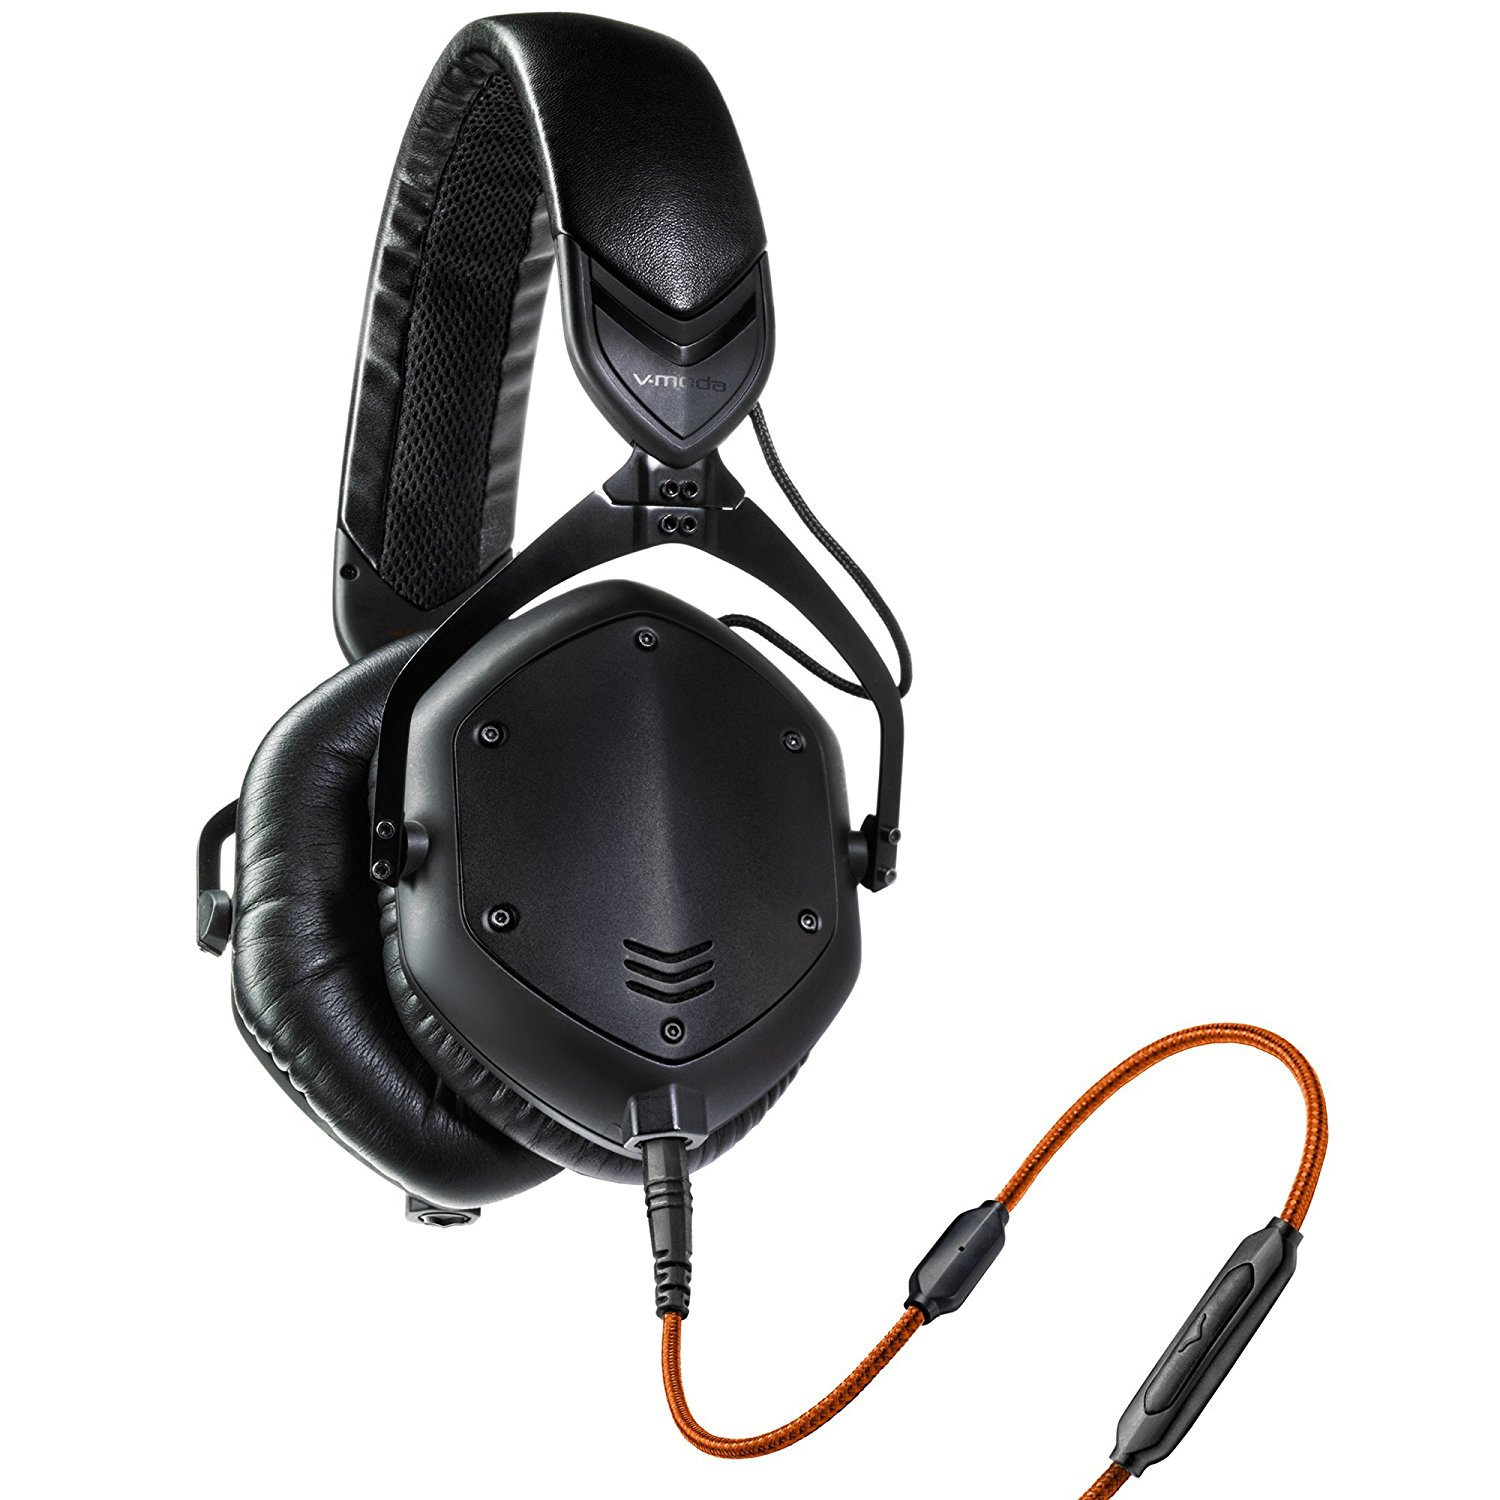 V-Moda Crossfade M-100 Wired Headphones